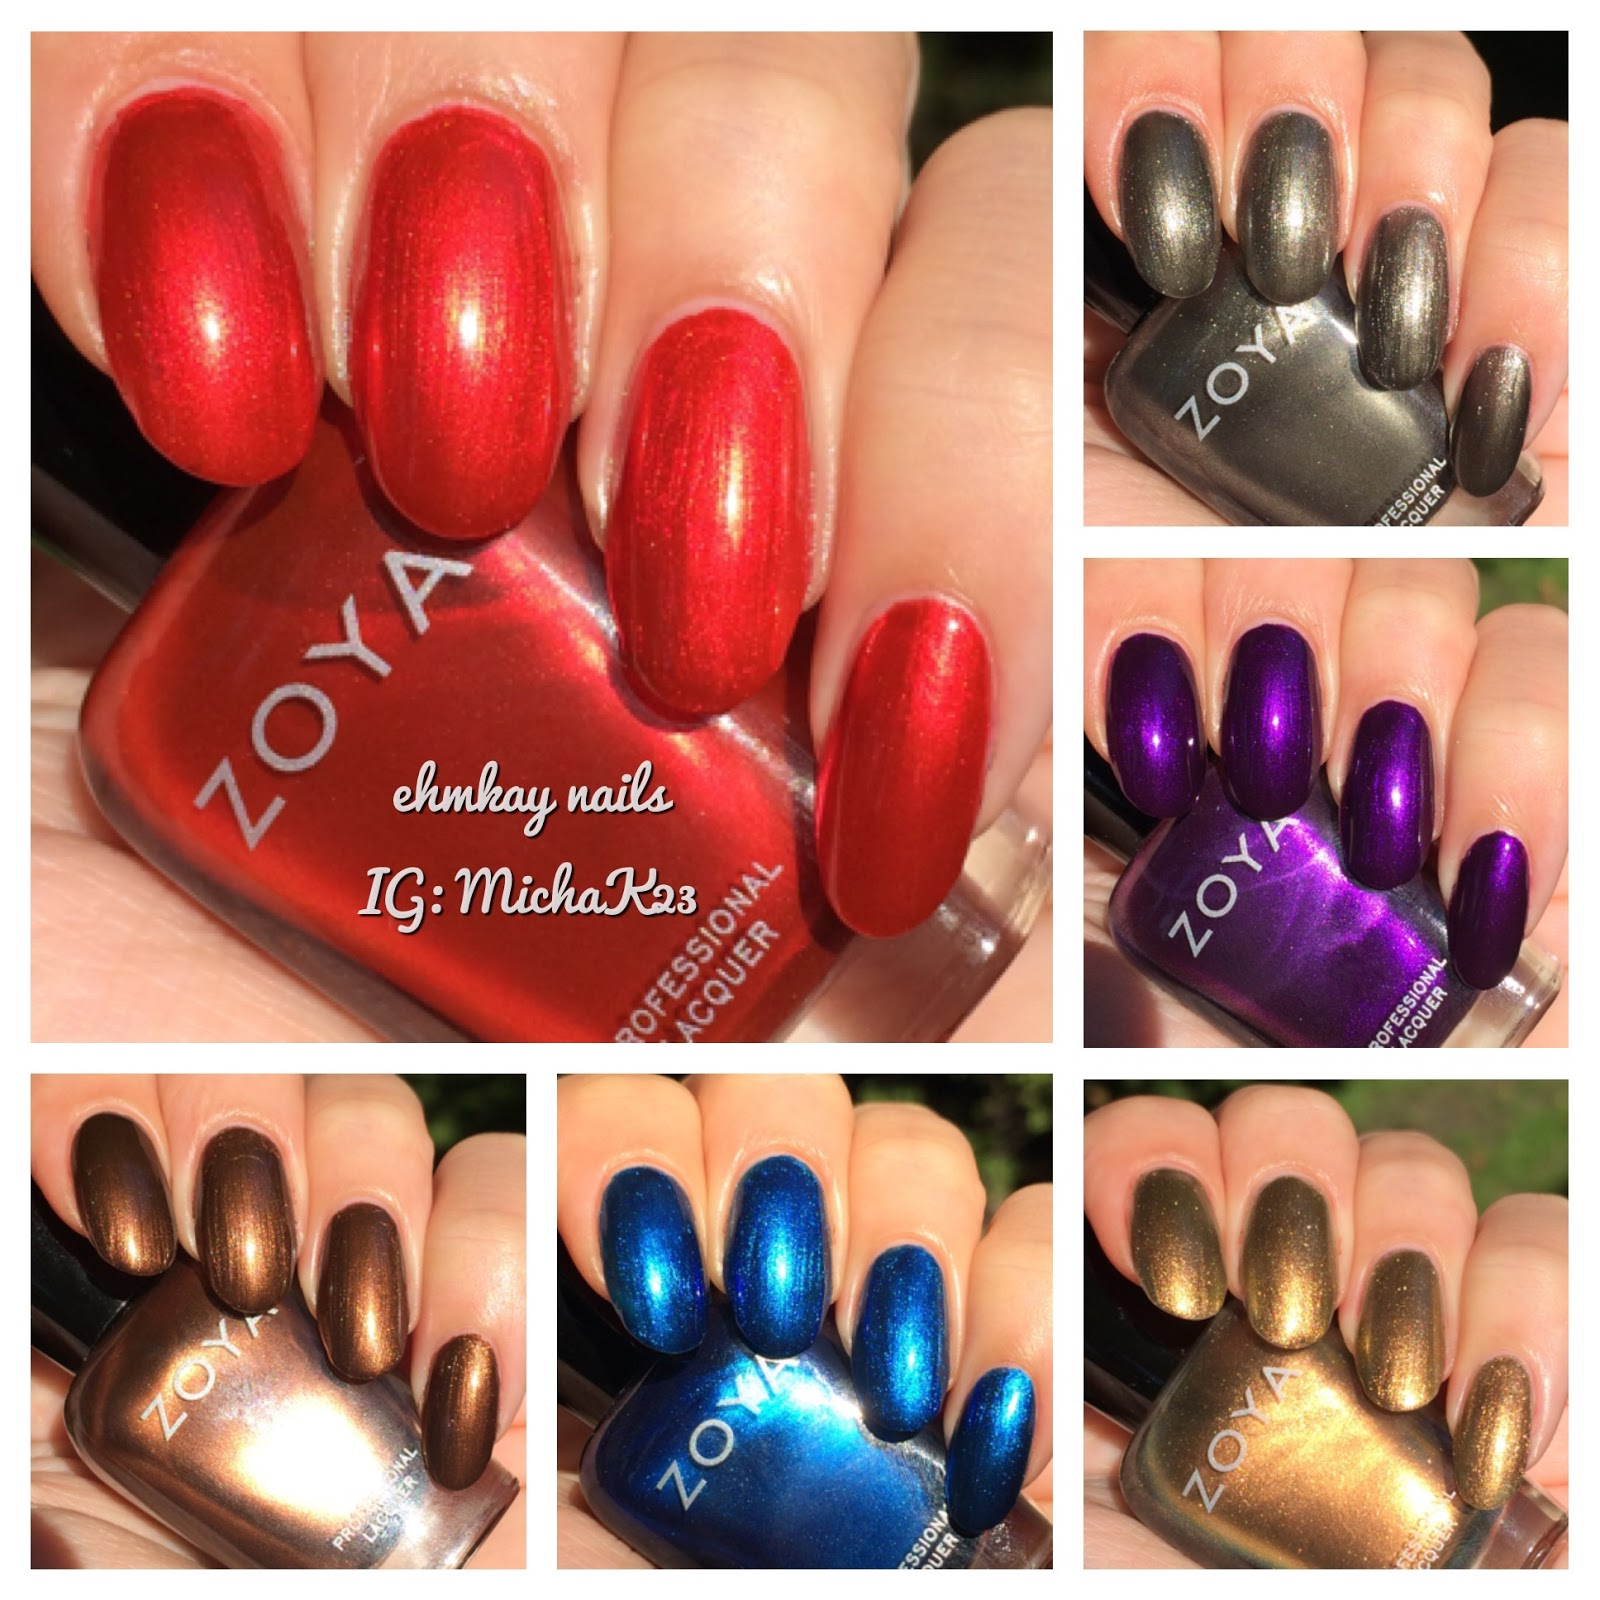 ehmkay nails: Zoya Fall 2015 Flair Collection: Swatches and Review